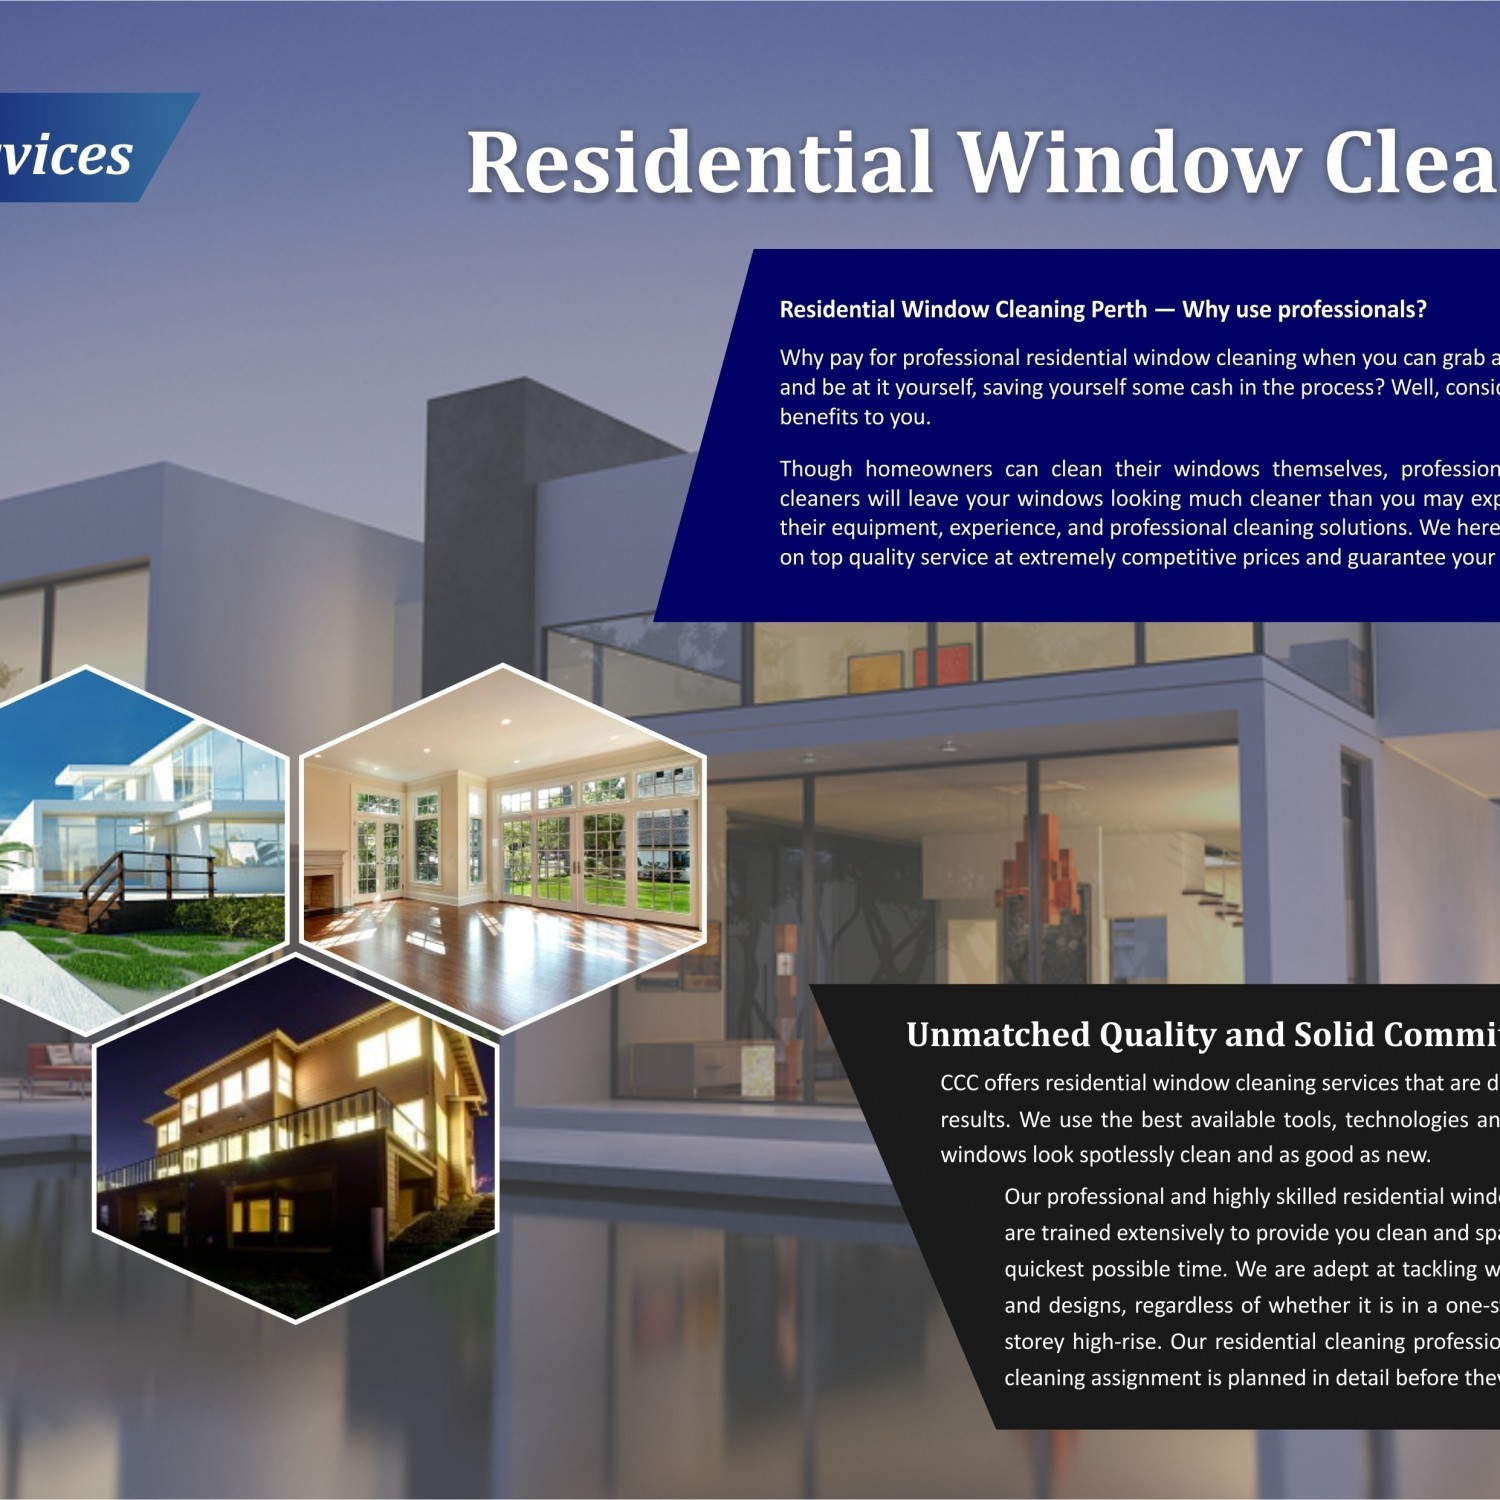 Residential Exterior Services: Residential Window Cleaning